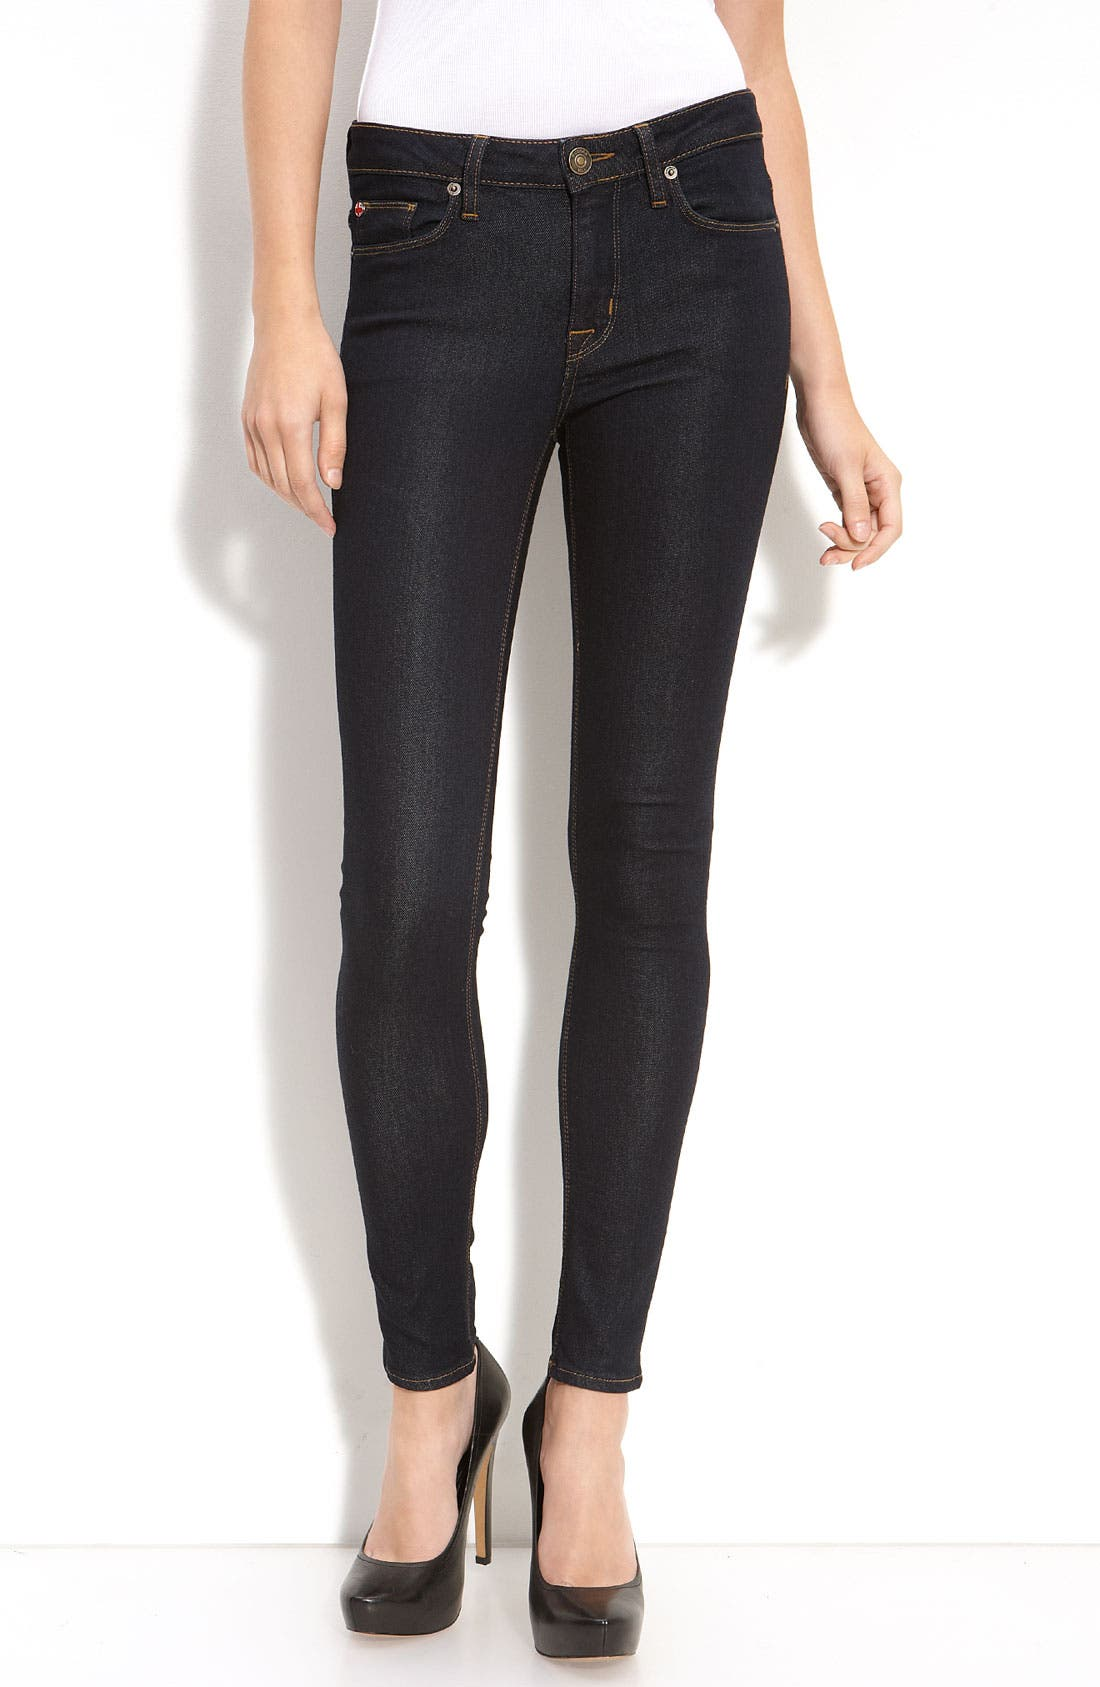 Alternate Image 1 Selected - Hudson Jeans 'Nico' Mid Rise Super Skinny Jeans (Chelsea)